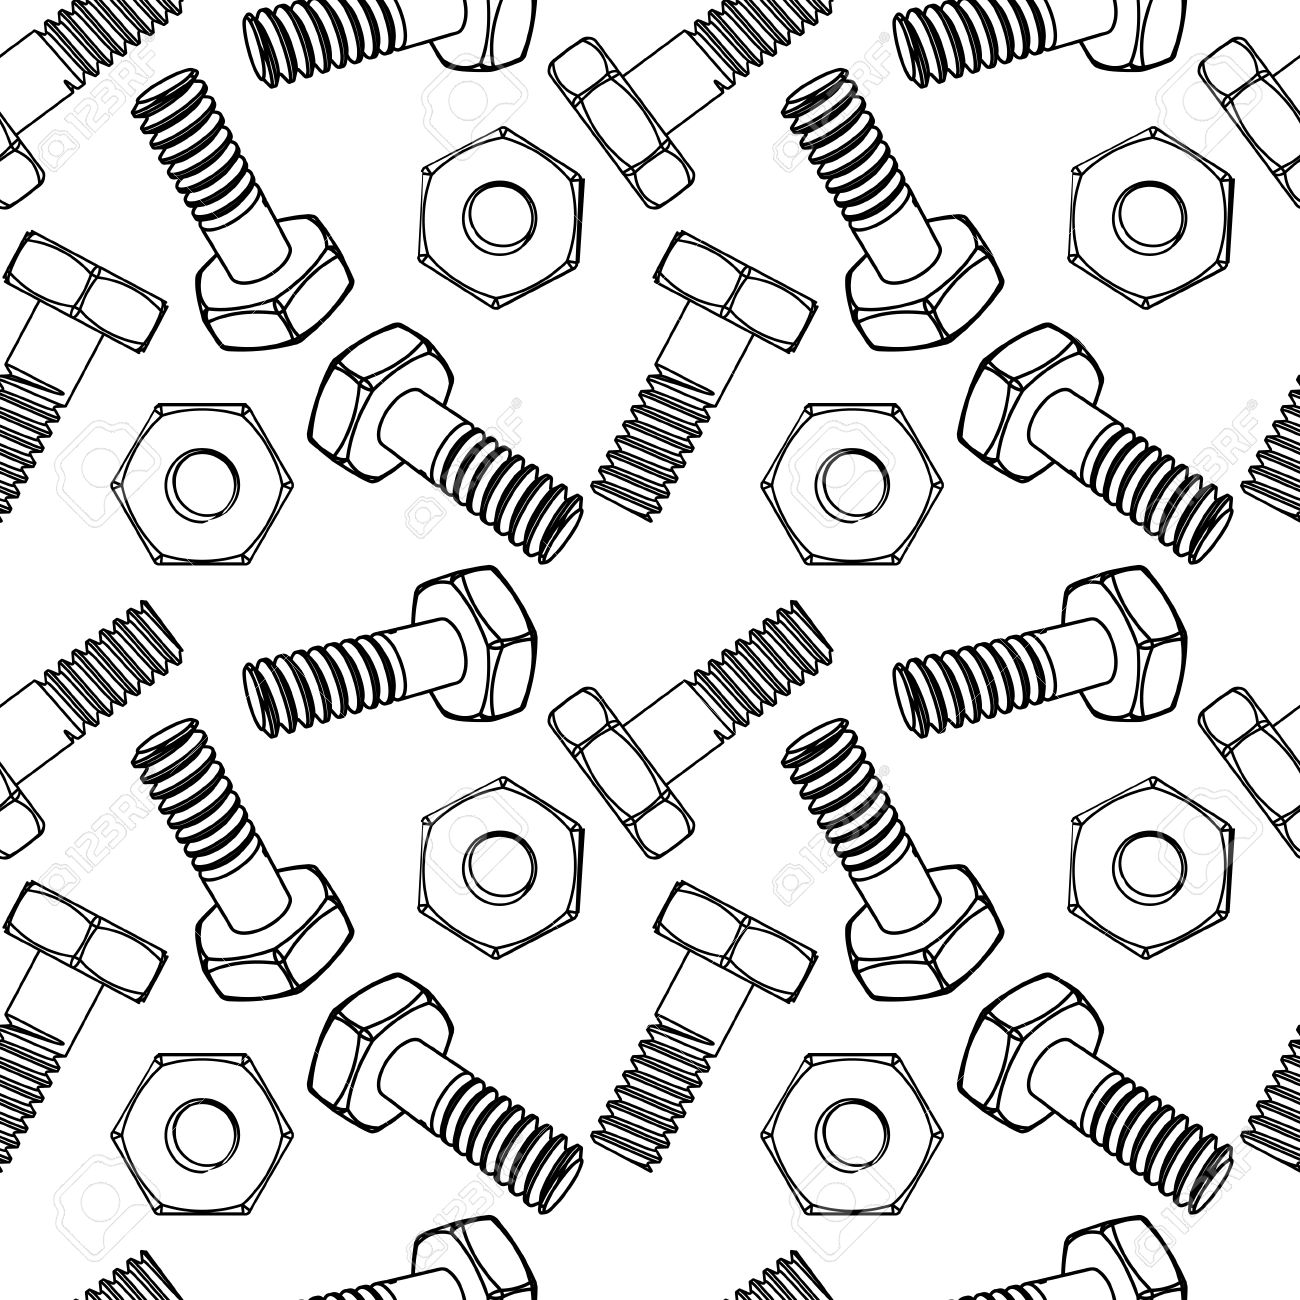 Seamless nuts and bolts. Vector illustration. Different projections.